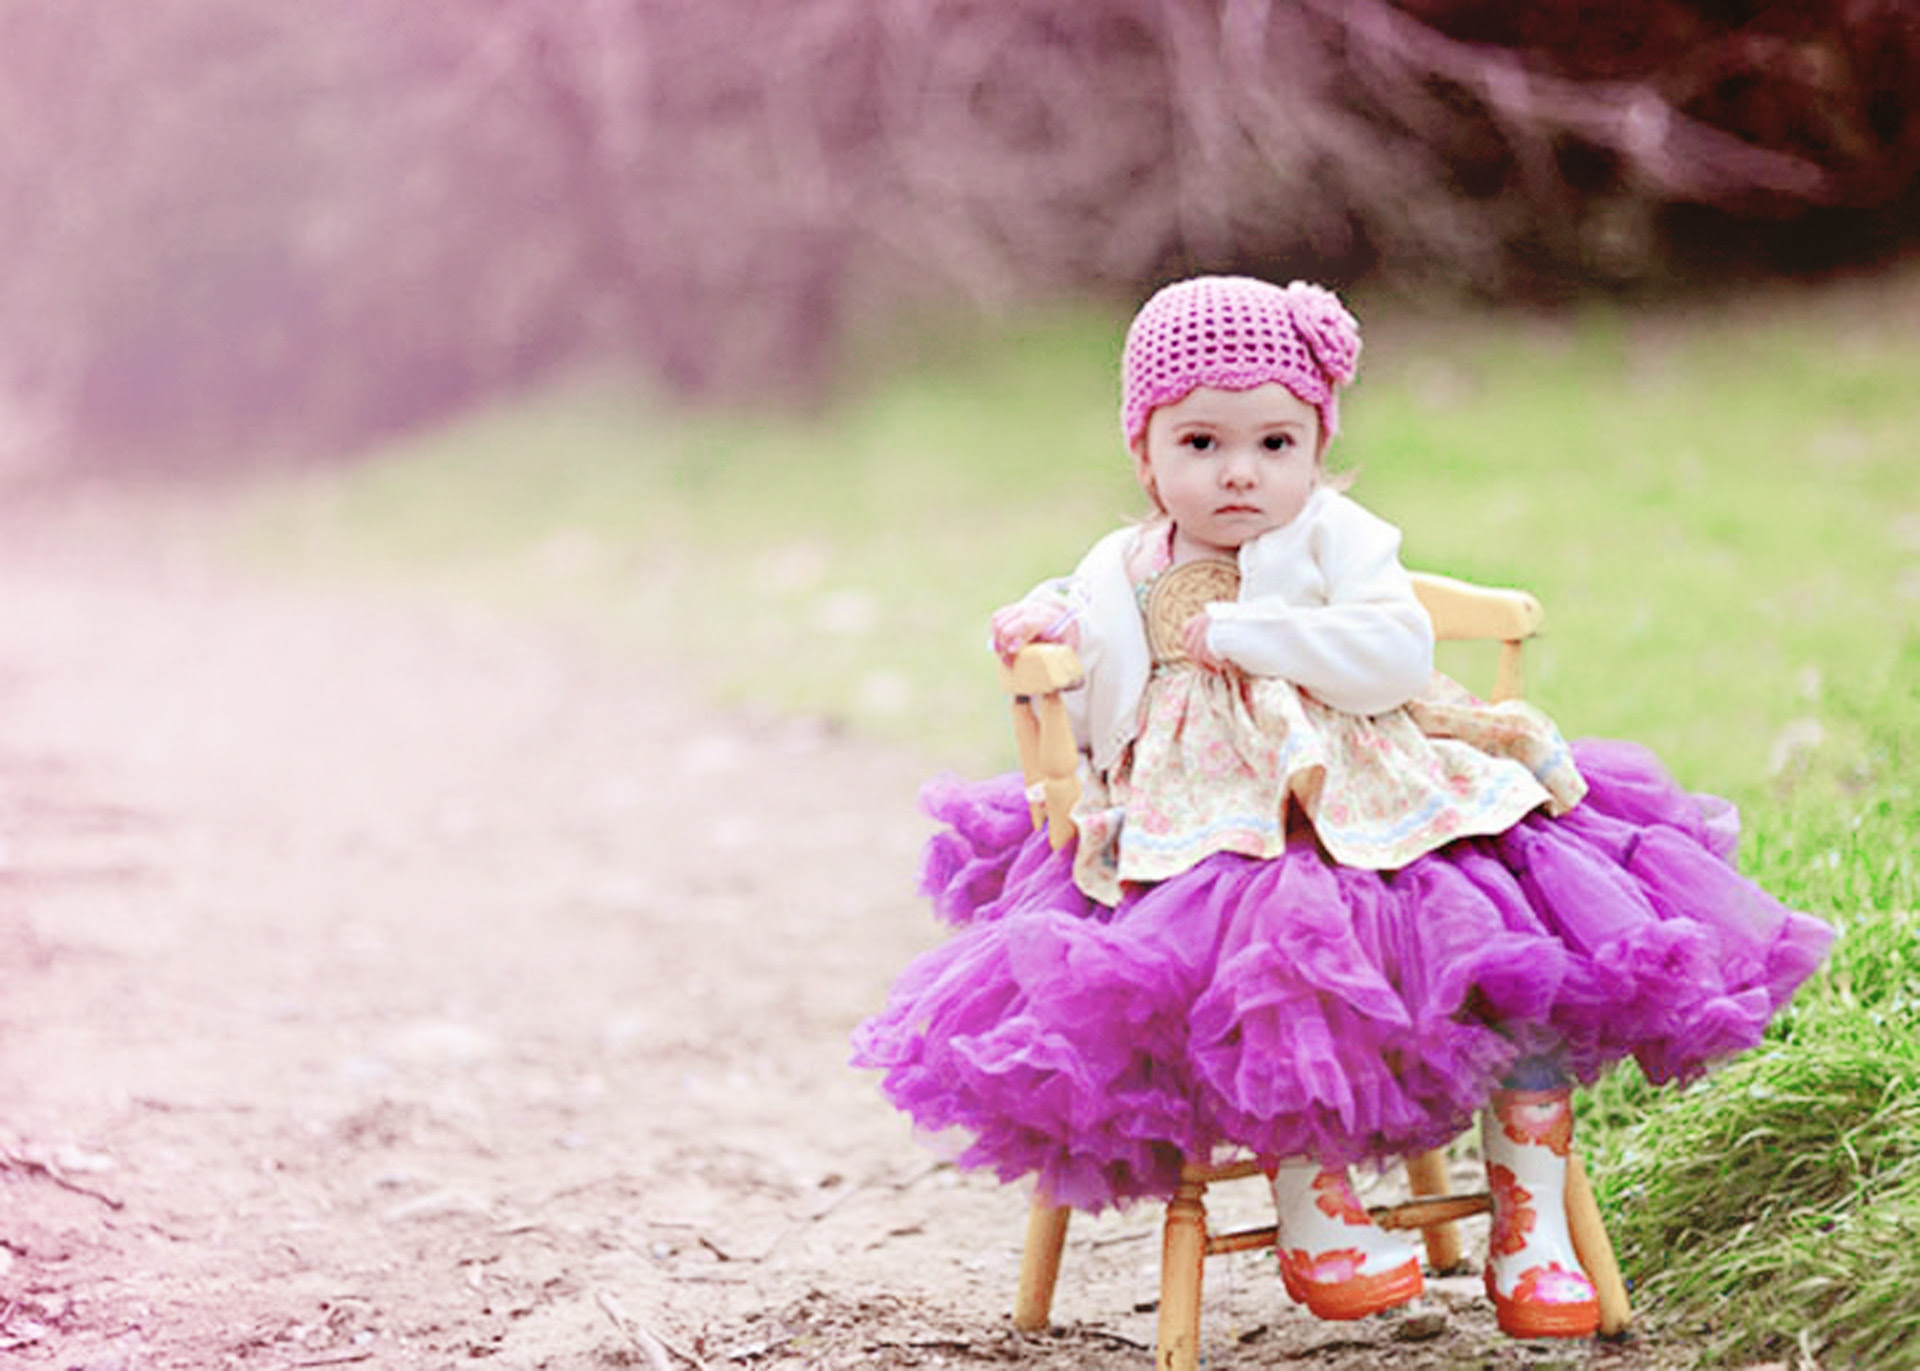 Cute Baby Pics Wallpapers 64+ images